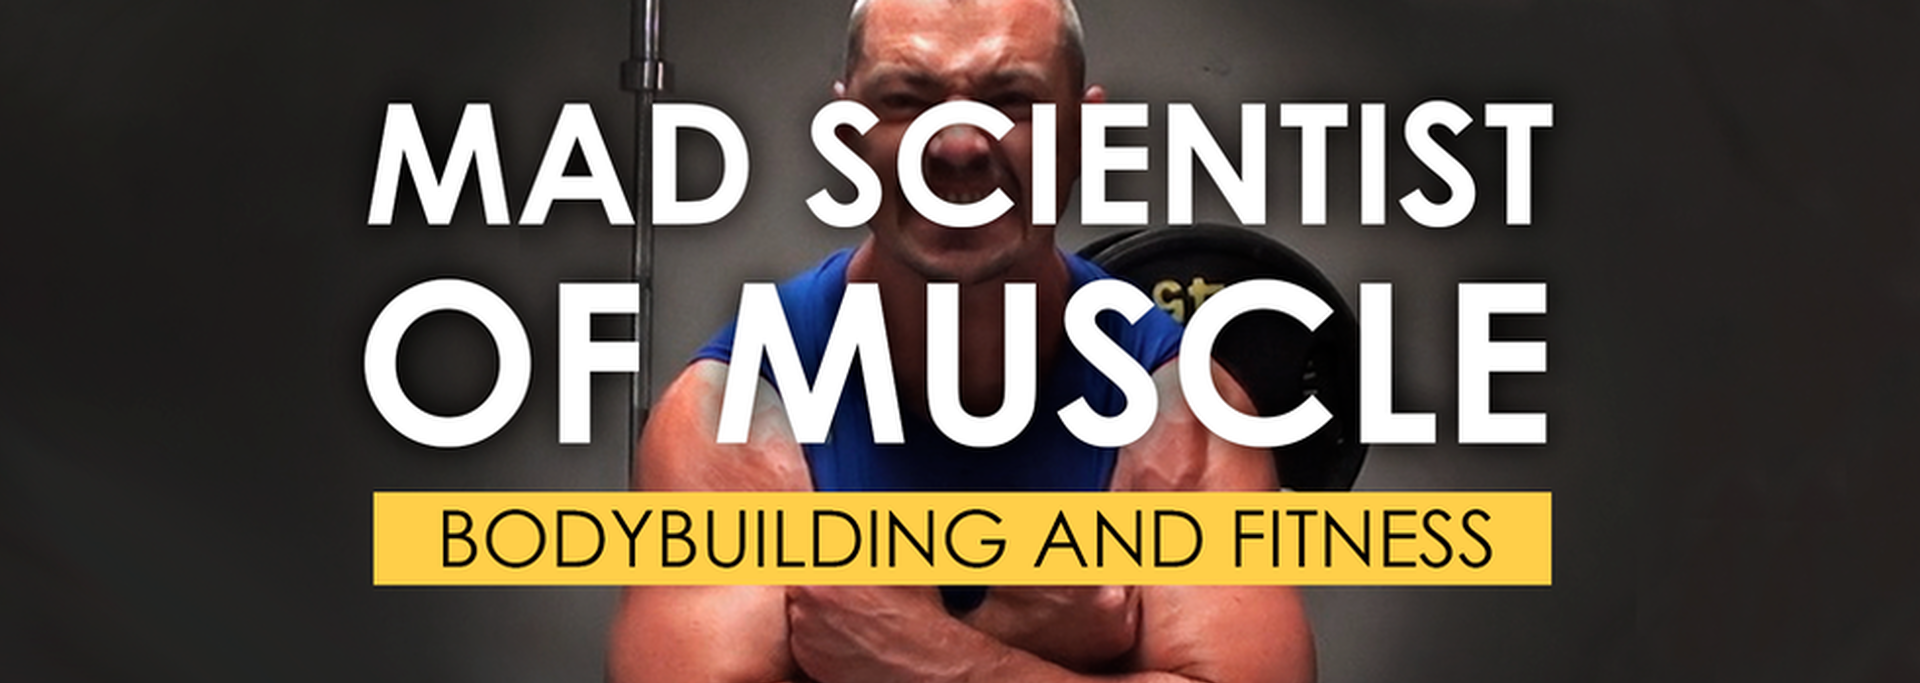 Mad Scientist of Muscle: Bodybuilding and Fitness